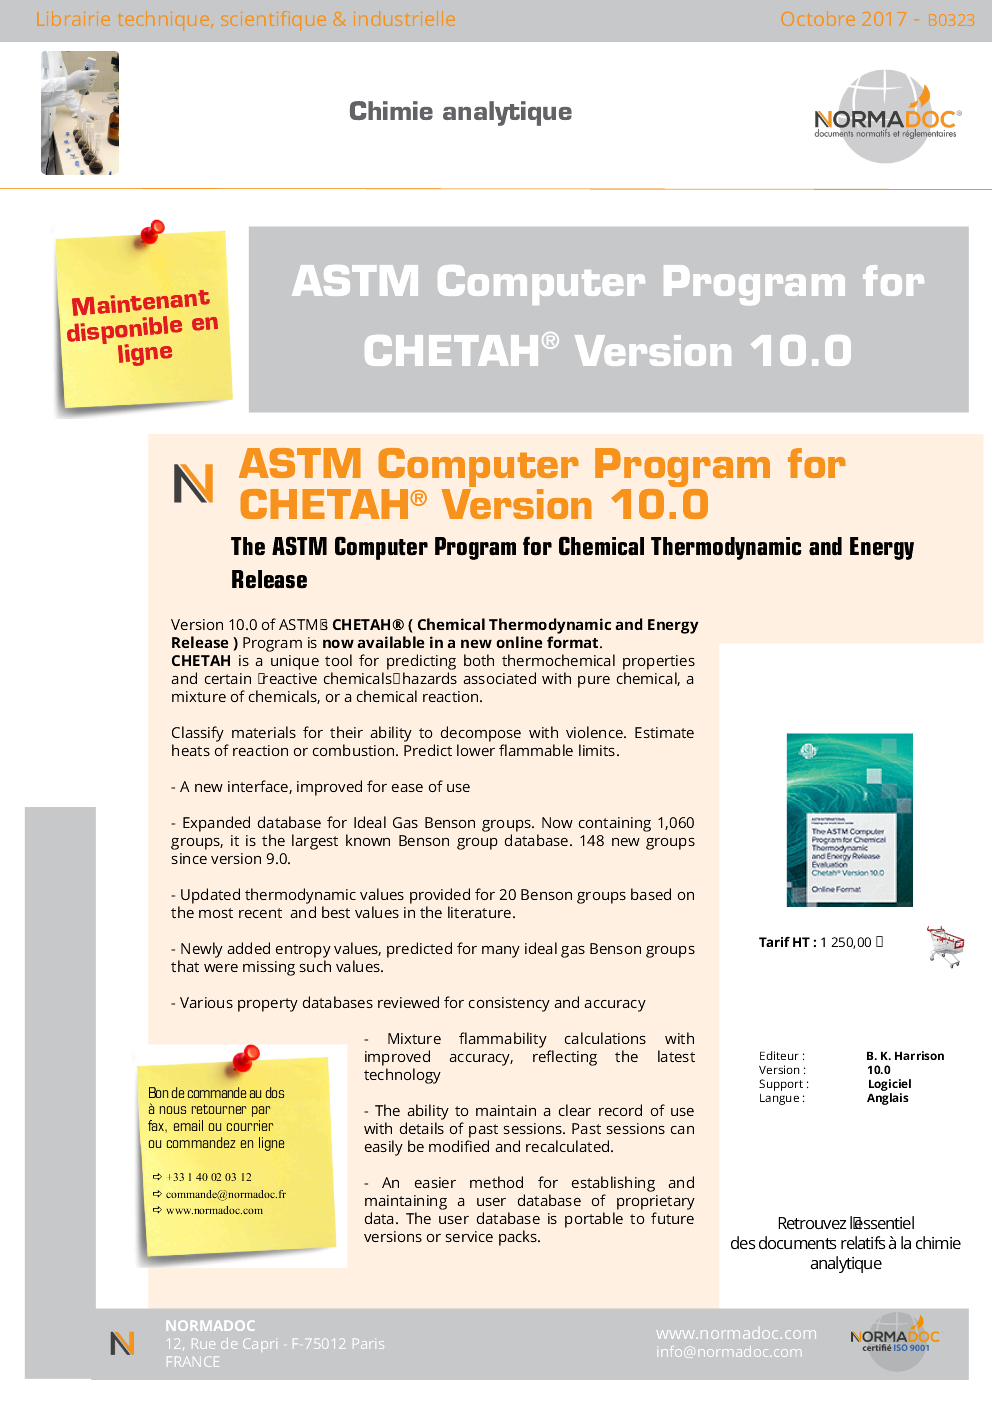 The ASTM Computer Program for Chemical Thermodynamic and Energy Release